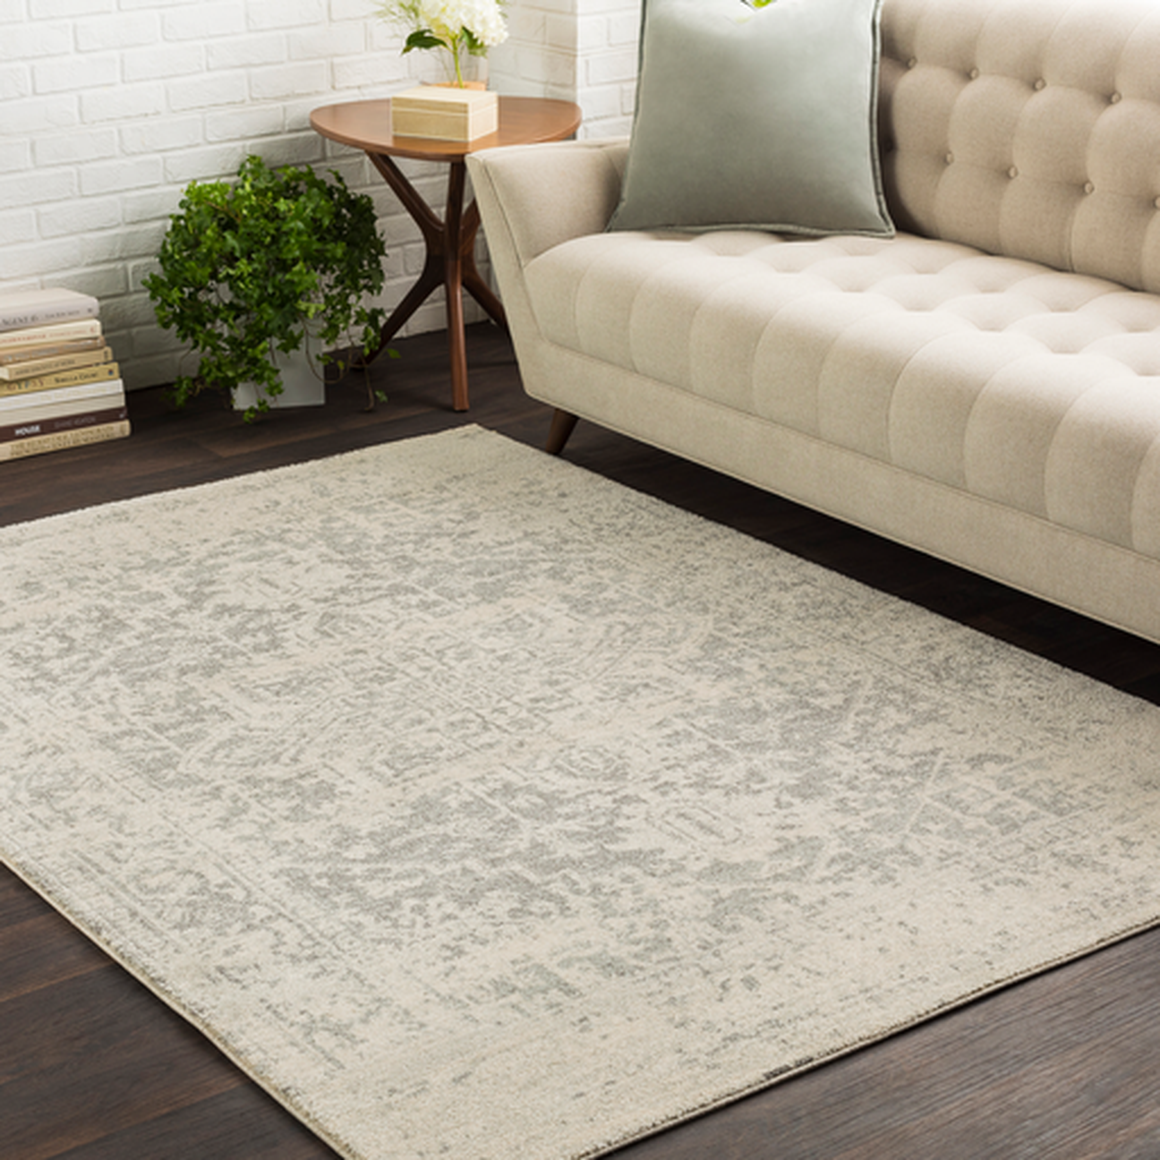 Harput Area Rug 9 3 X 12 6 Neva Home In 2020 Area Rugs Beige Area Rugs Rugs